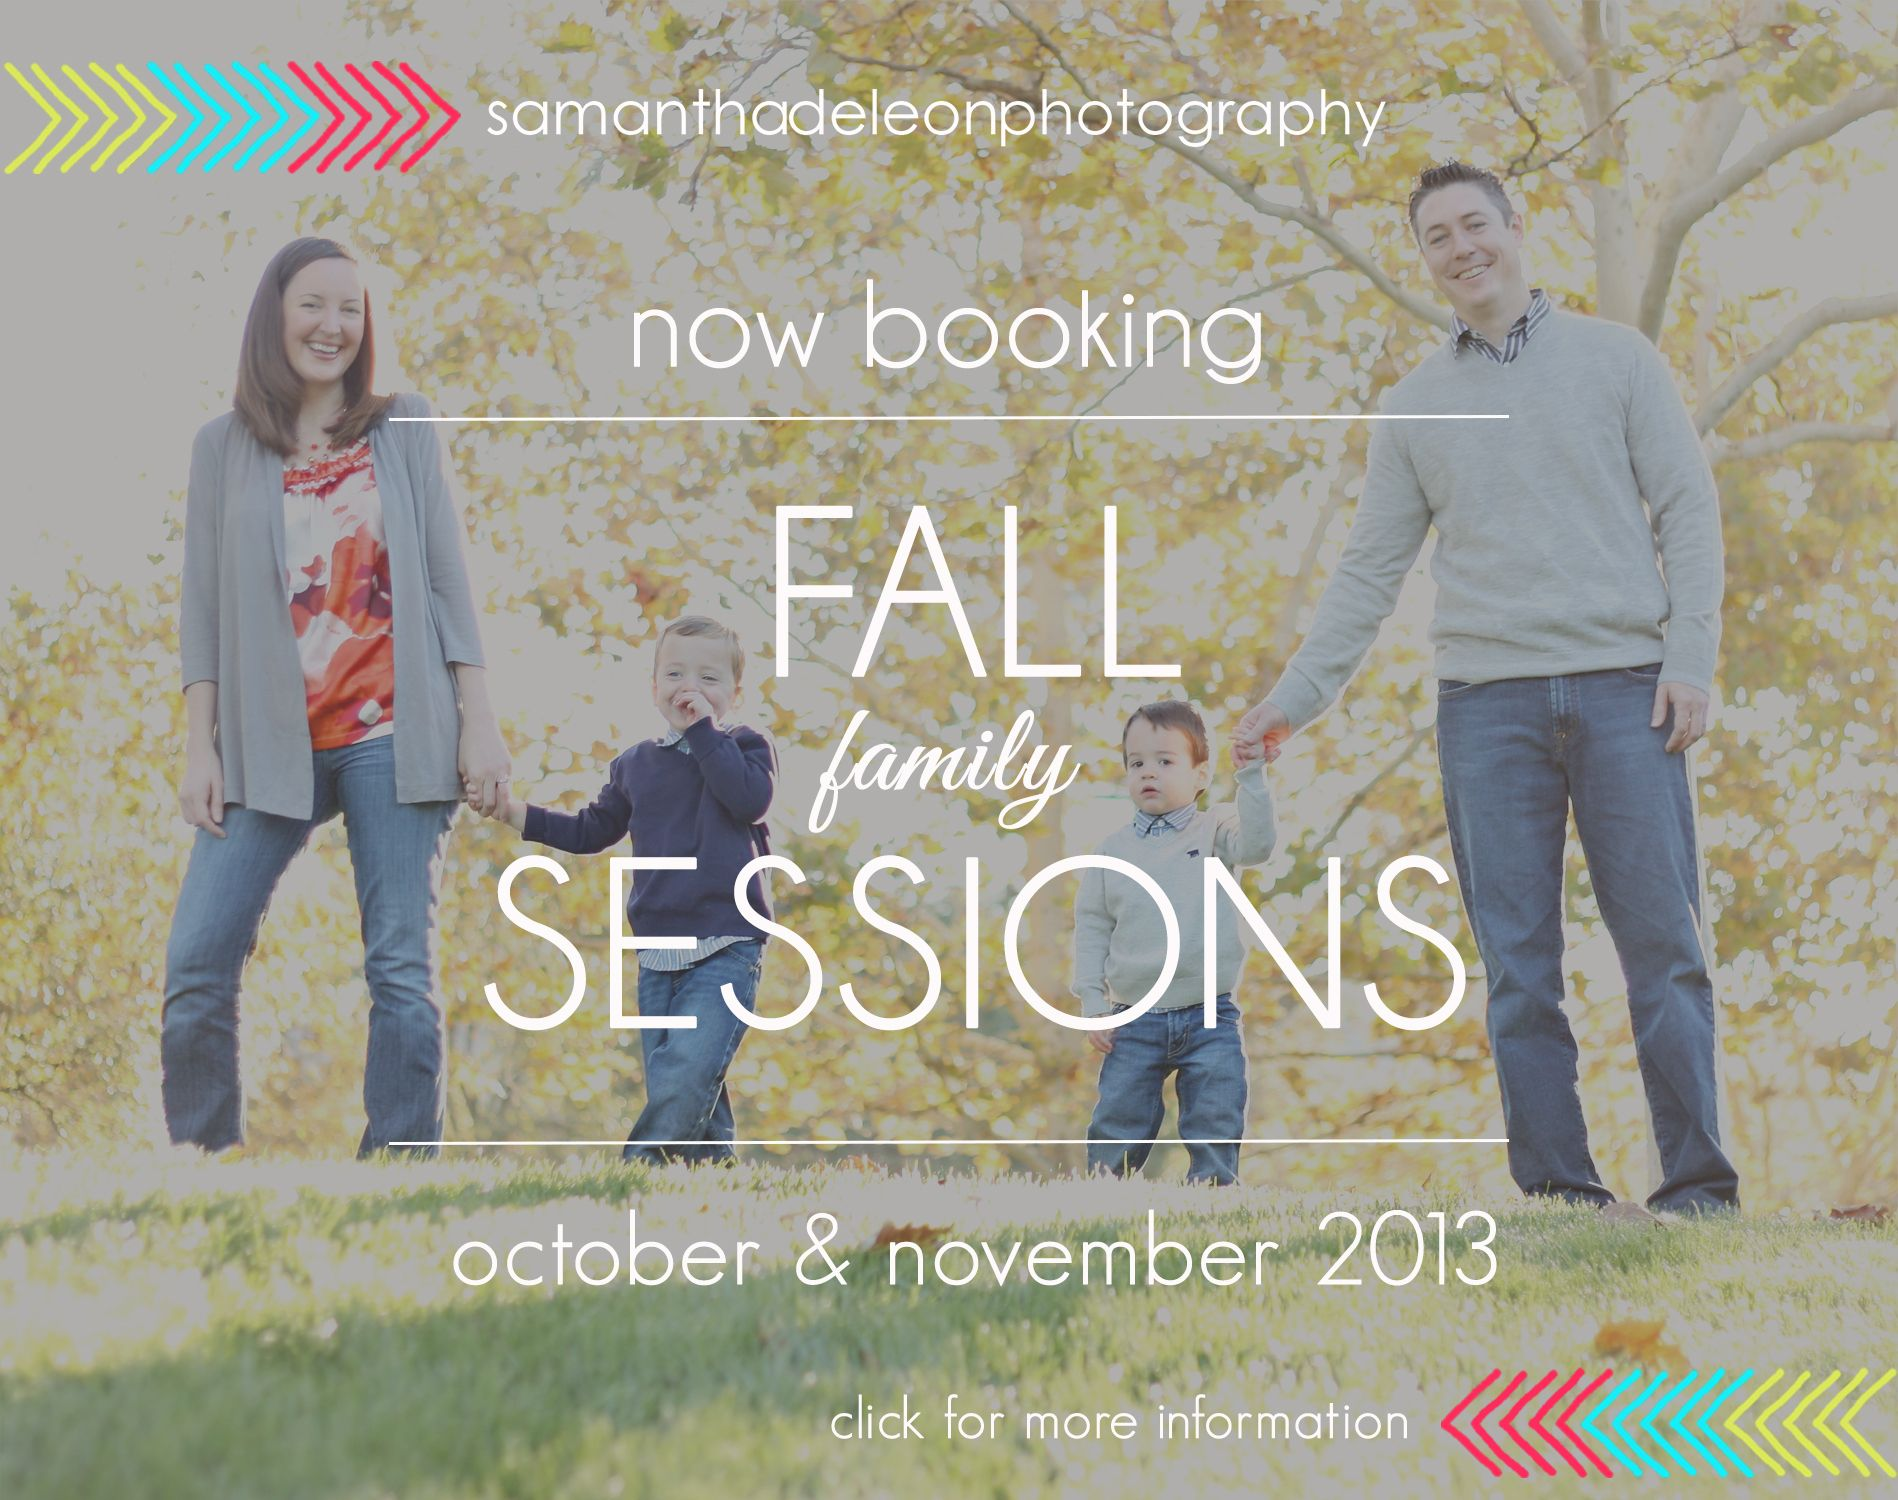 Now Booking Family Fall 2013 Sessions - Samantha DeLeon Photography, El Dorado Hills